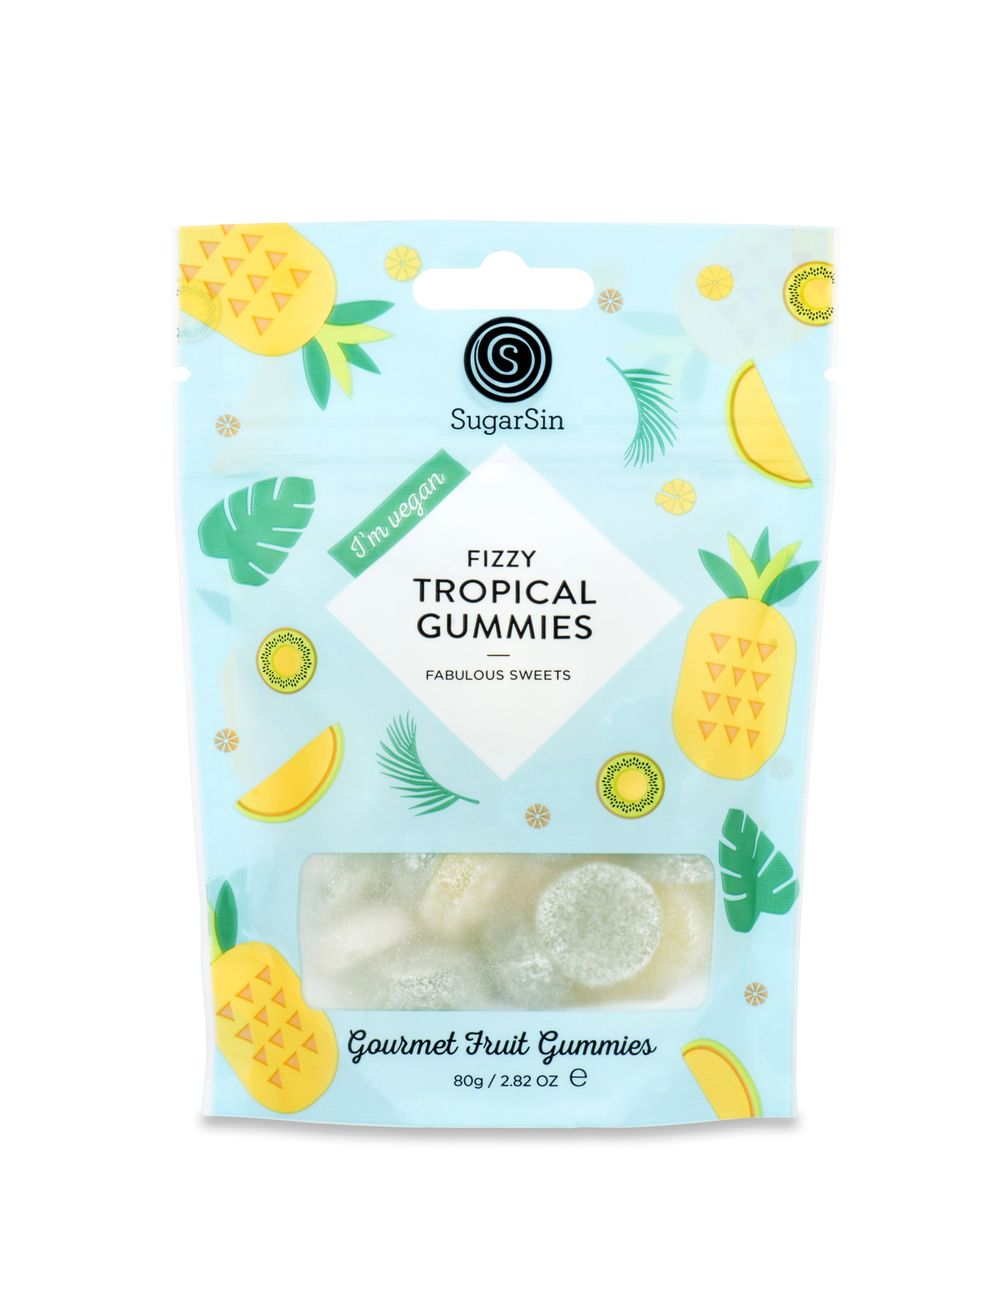 Fizzy Tropical Gummies Pouch - Vegan